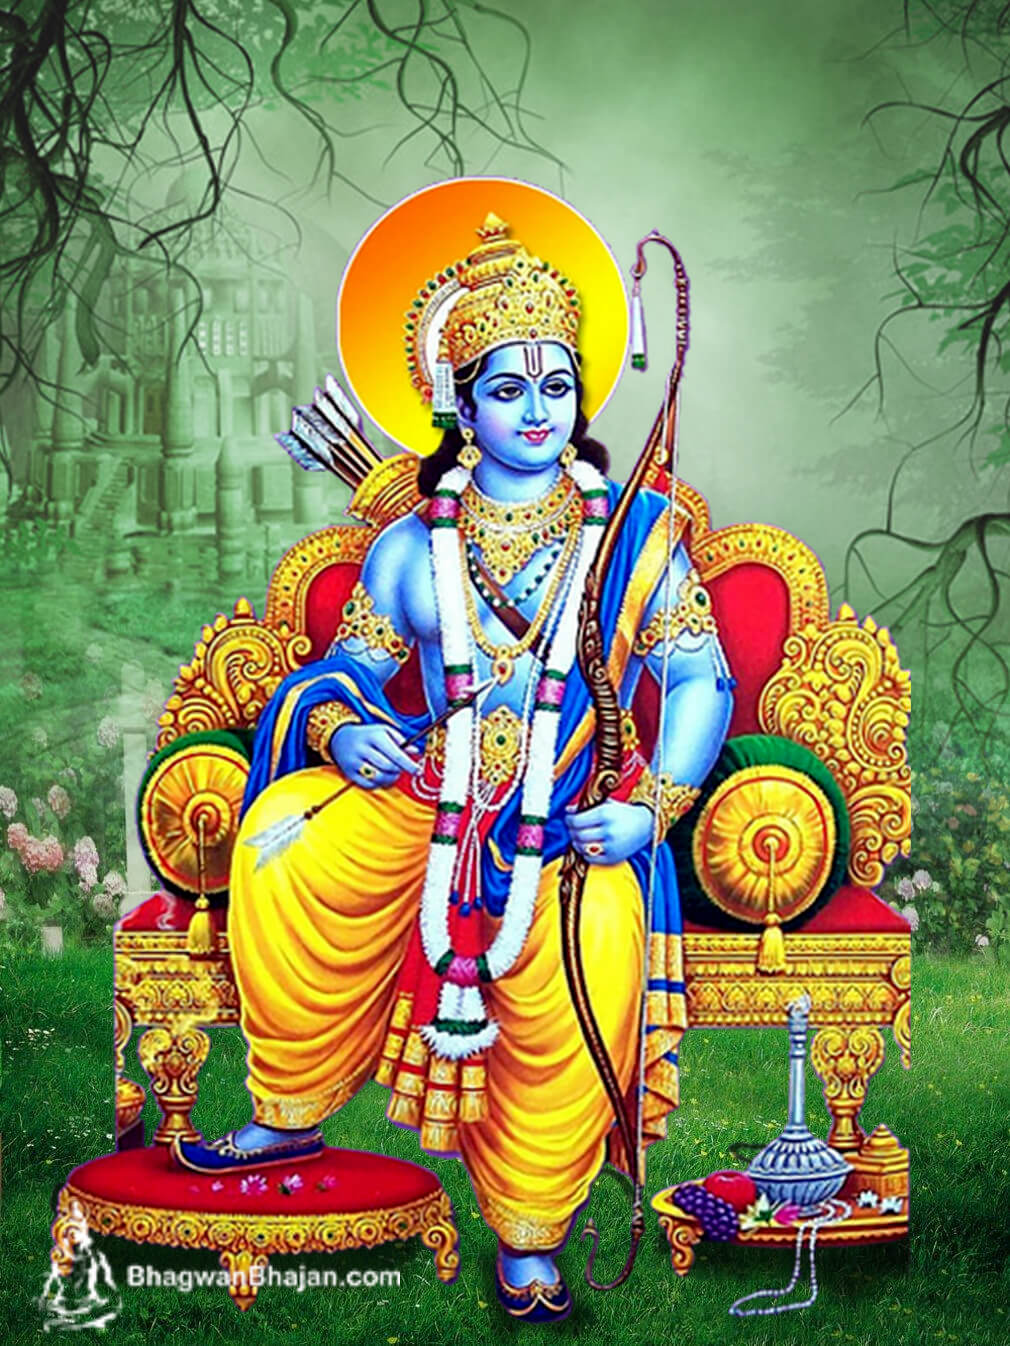 Bhagwan Shri Ram HD Wallpaper 2020